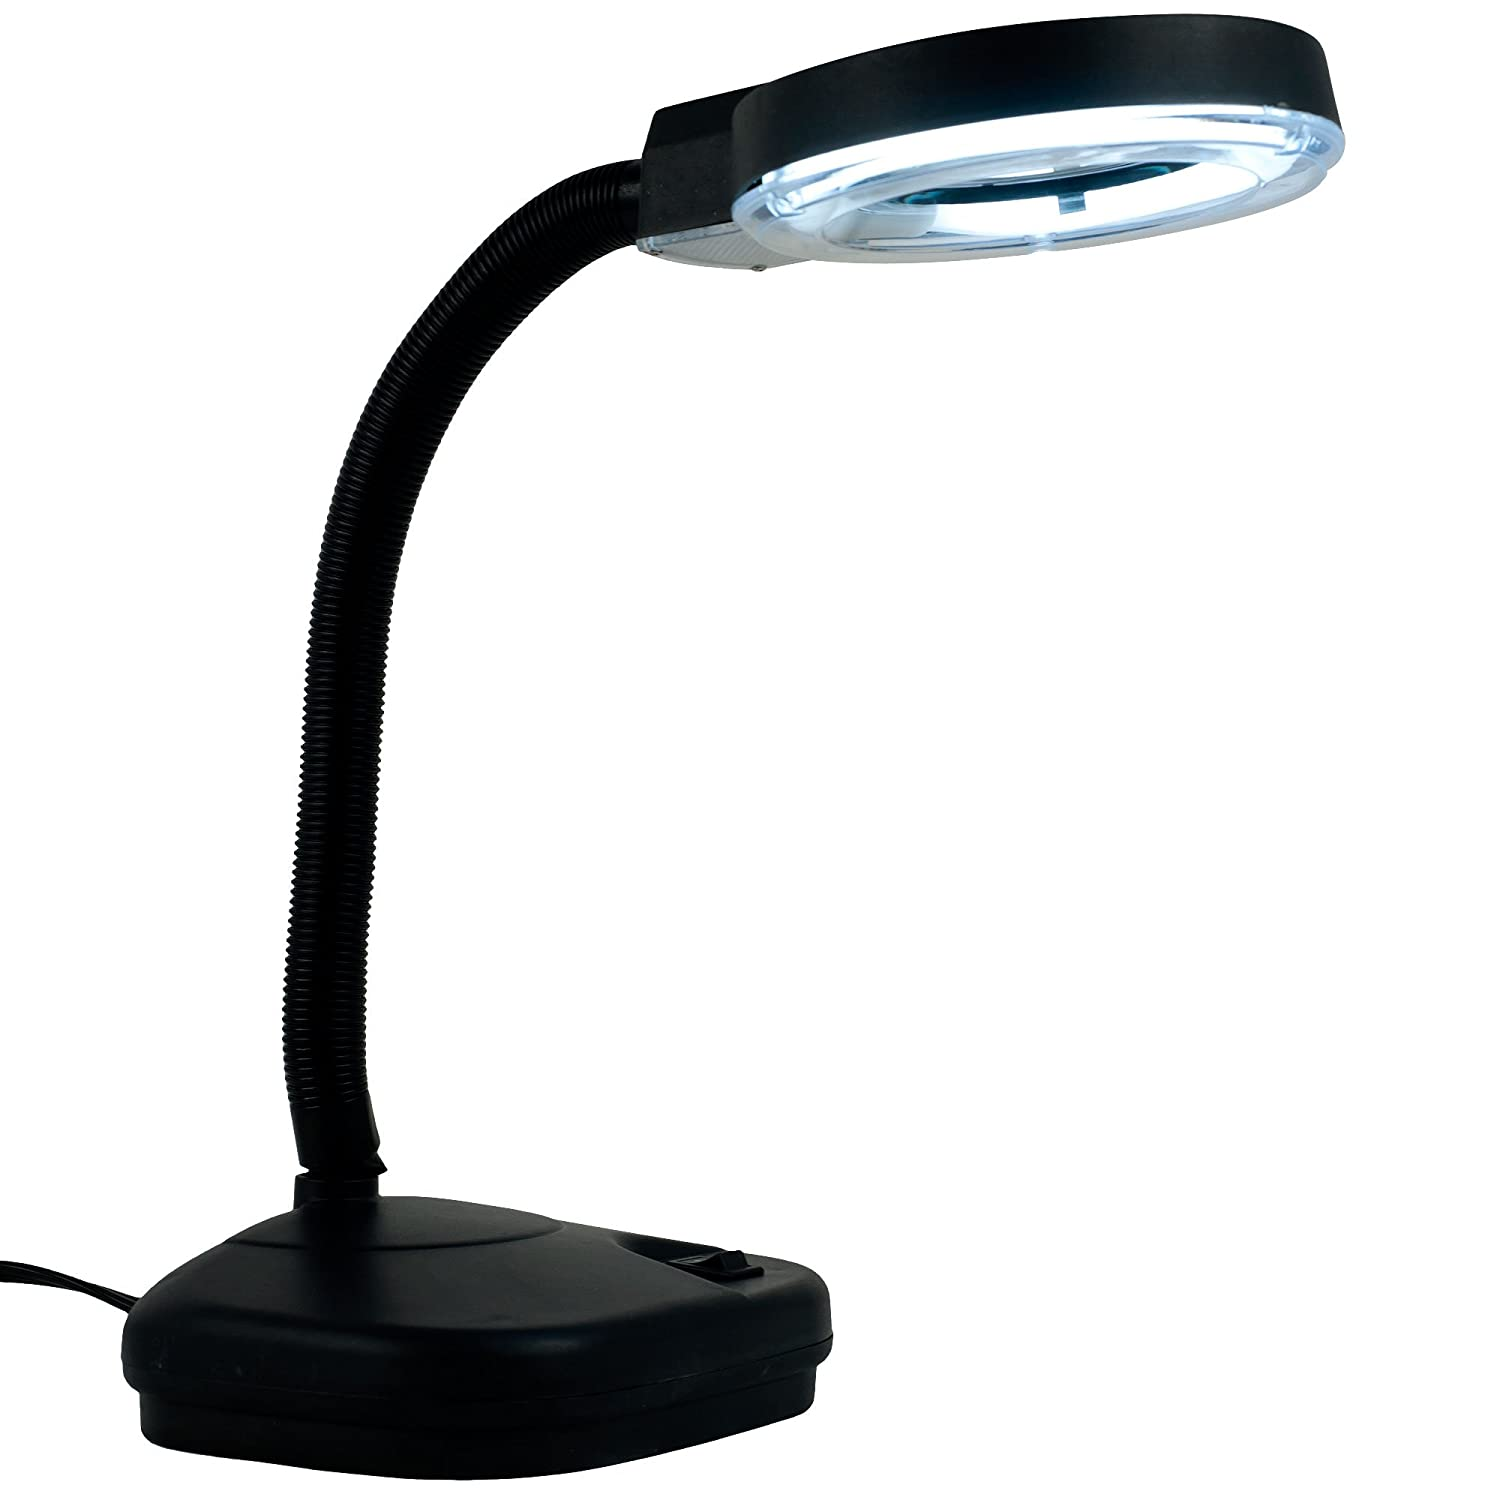 Eurotool Reading Lamp, Illumination Magnifier Glass With 5x And 10x Zoom    Desk Lamps   Amazon.com